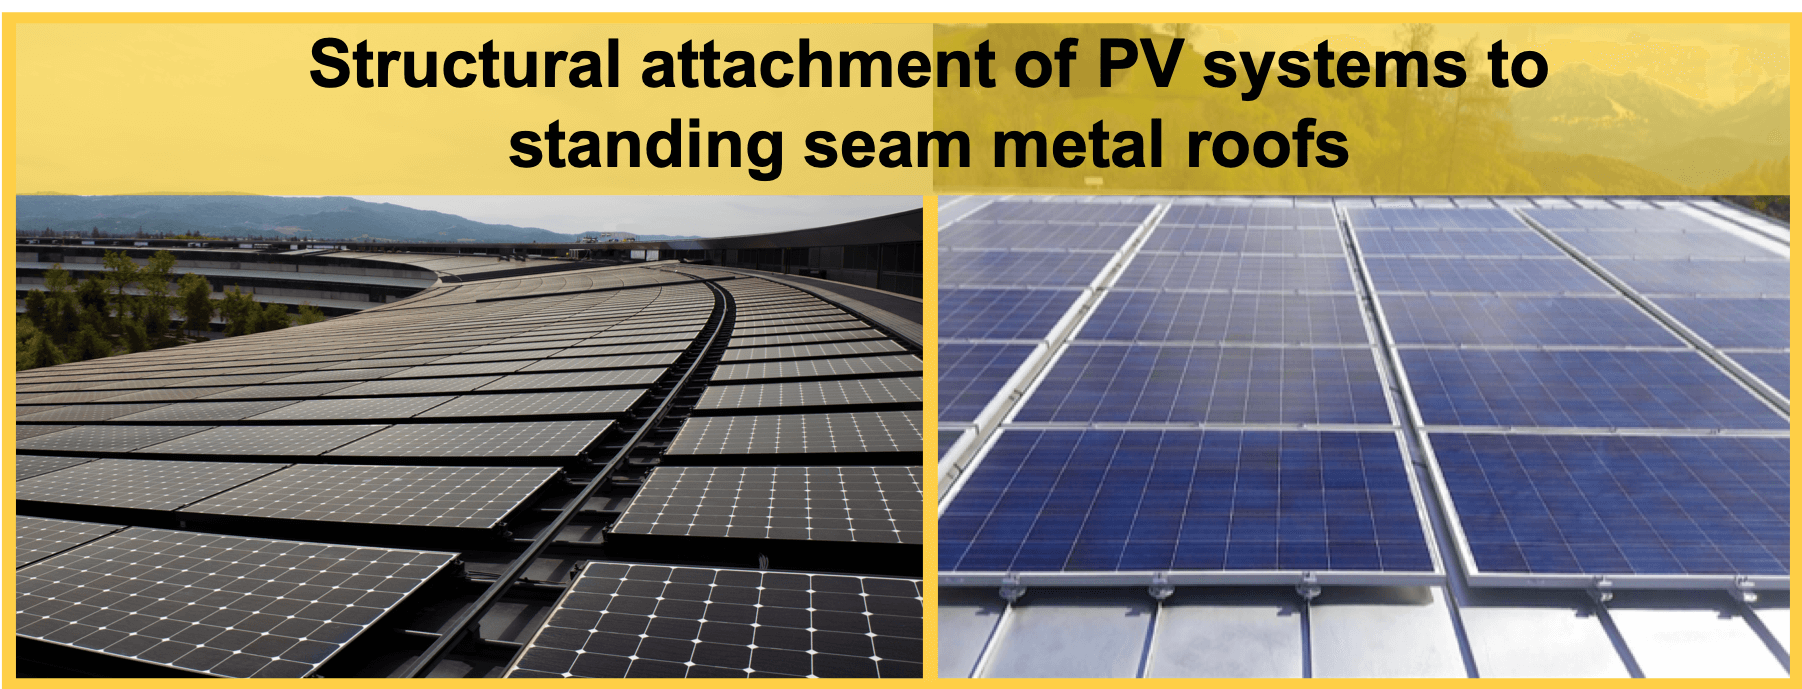 S-5!® Structural attachment of PV modules to standing seam metal roofs